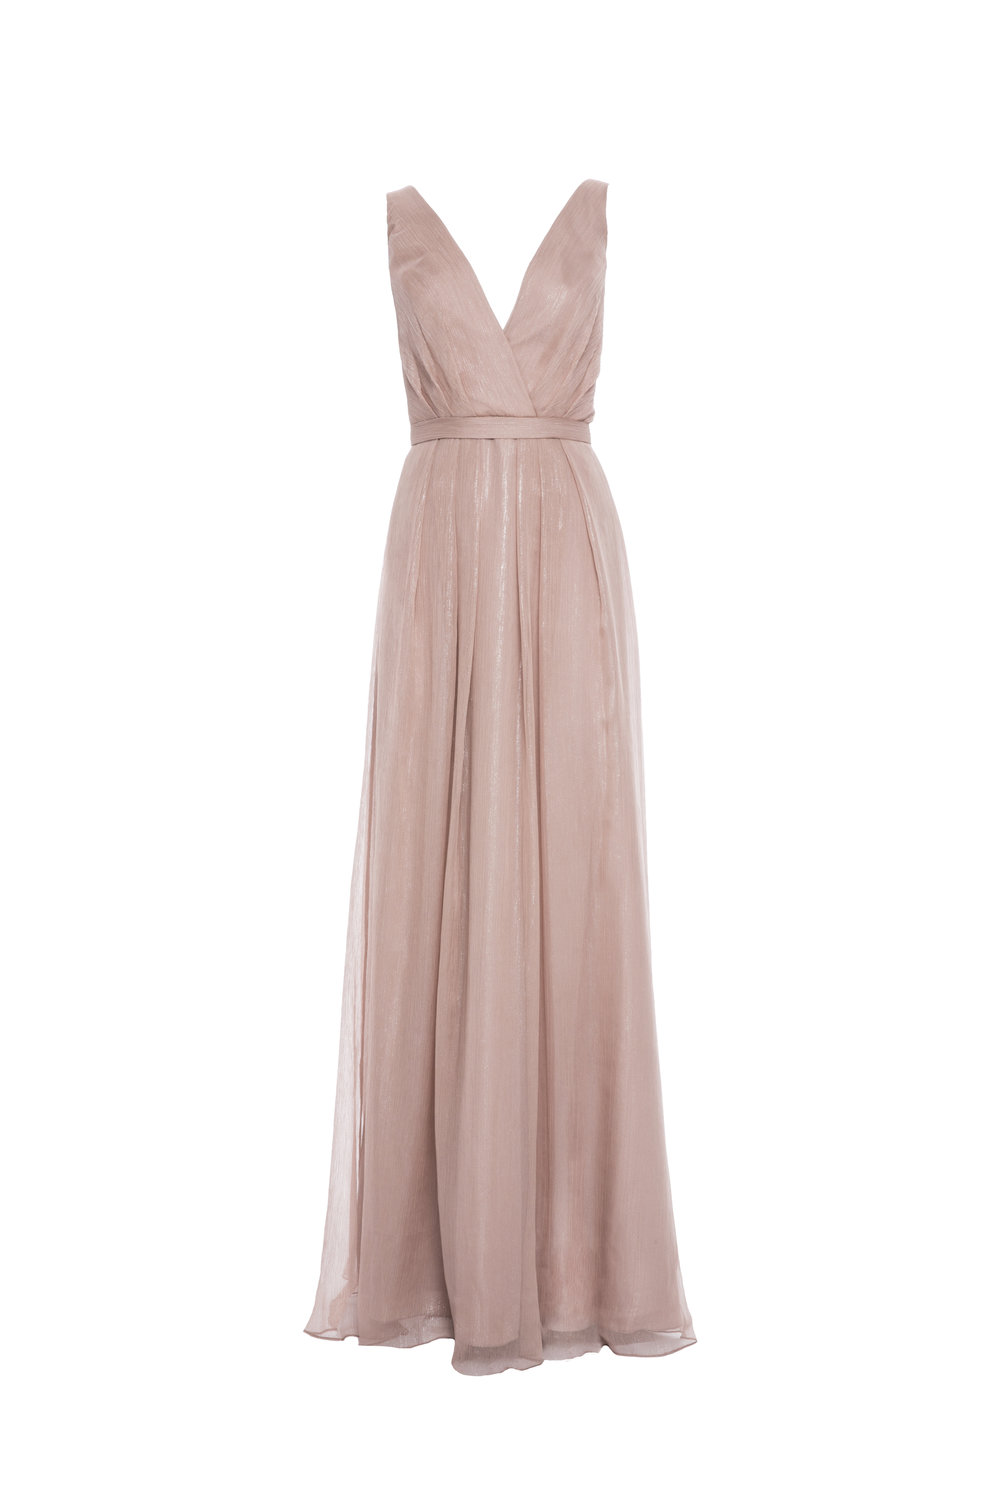 Monique Lhuillier 450476 Rose Metallic Chiffon